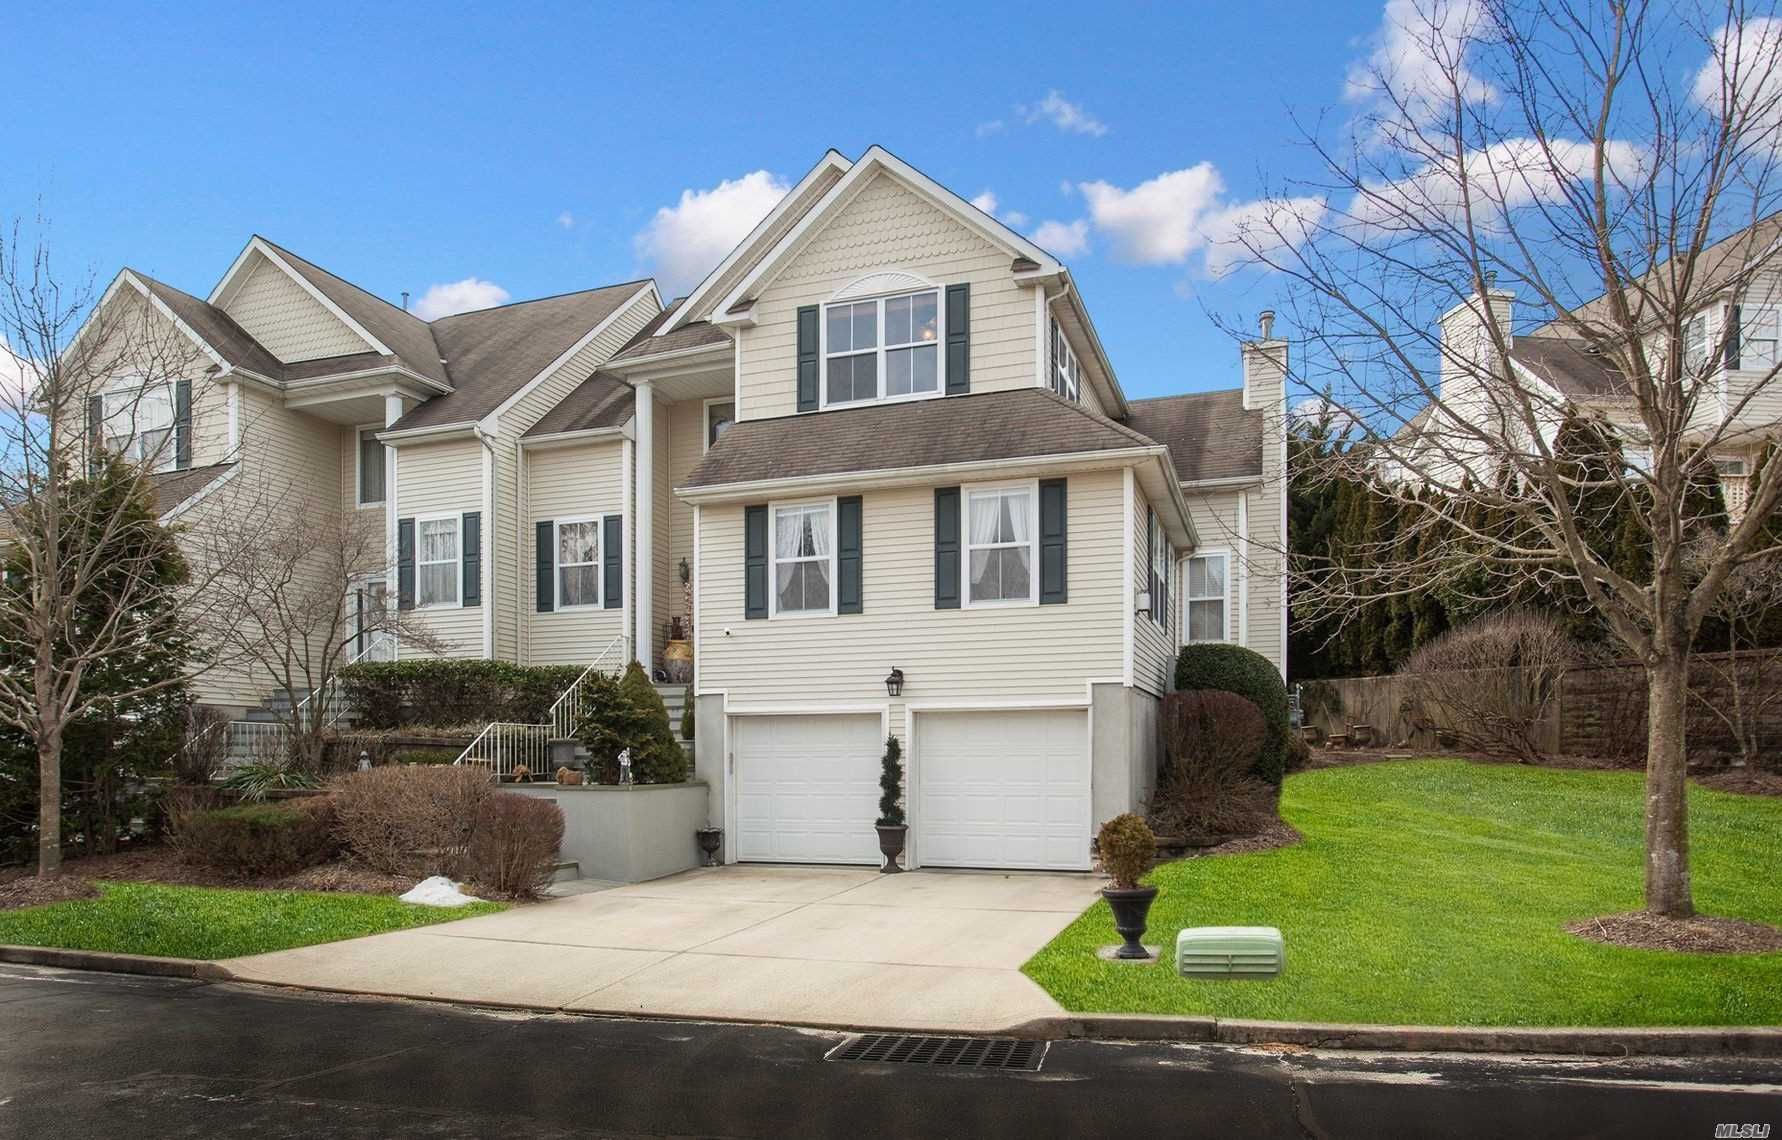 2018 Remodeling Makes This A Turn Key Platnium Residence; Open Flr Plan. Redesigned Eikitchen W/Custom Cabinetry, Ss Appliances, Double-Thick Quartz Center Island & More!; Flr-To-Ceiling Windows, Hardwood Flrs, Master Bdrm Suite W/Jetted-Tub; Private Rear Yard W/Large Deck & Patio, + 5 Adjacent Guest Parking Spaces; Pull Down Attic Storage W/ Flring; Finished Lower Level W/ Two Large Rms + Full Bth. Amenities Include Club House, Pool, Tennis, Fitness Rm, Snow Removal & More + 13-Mo Home Warranty.